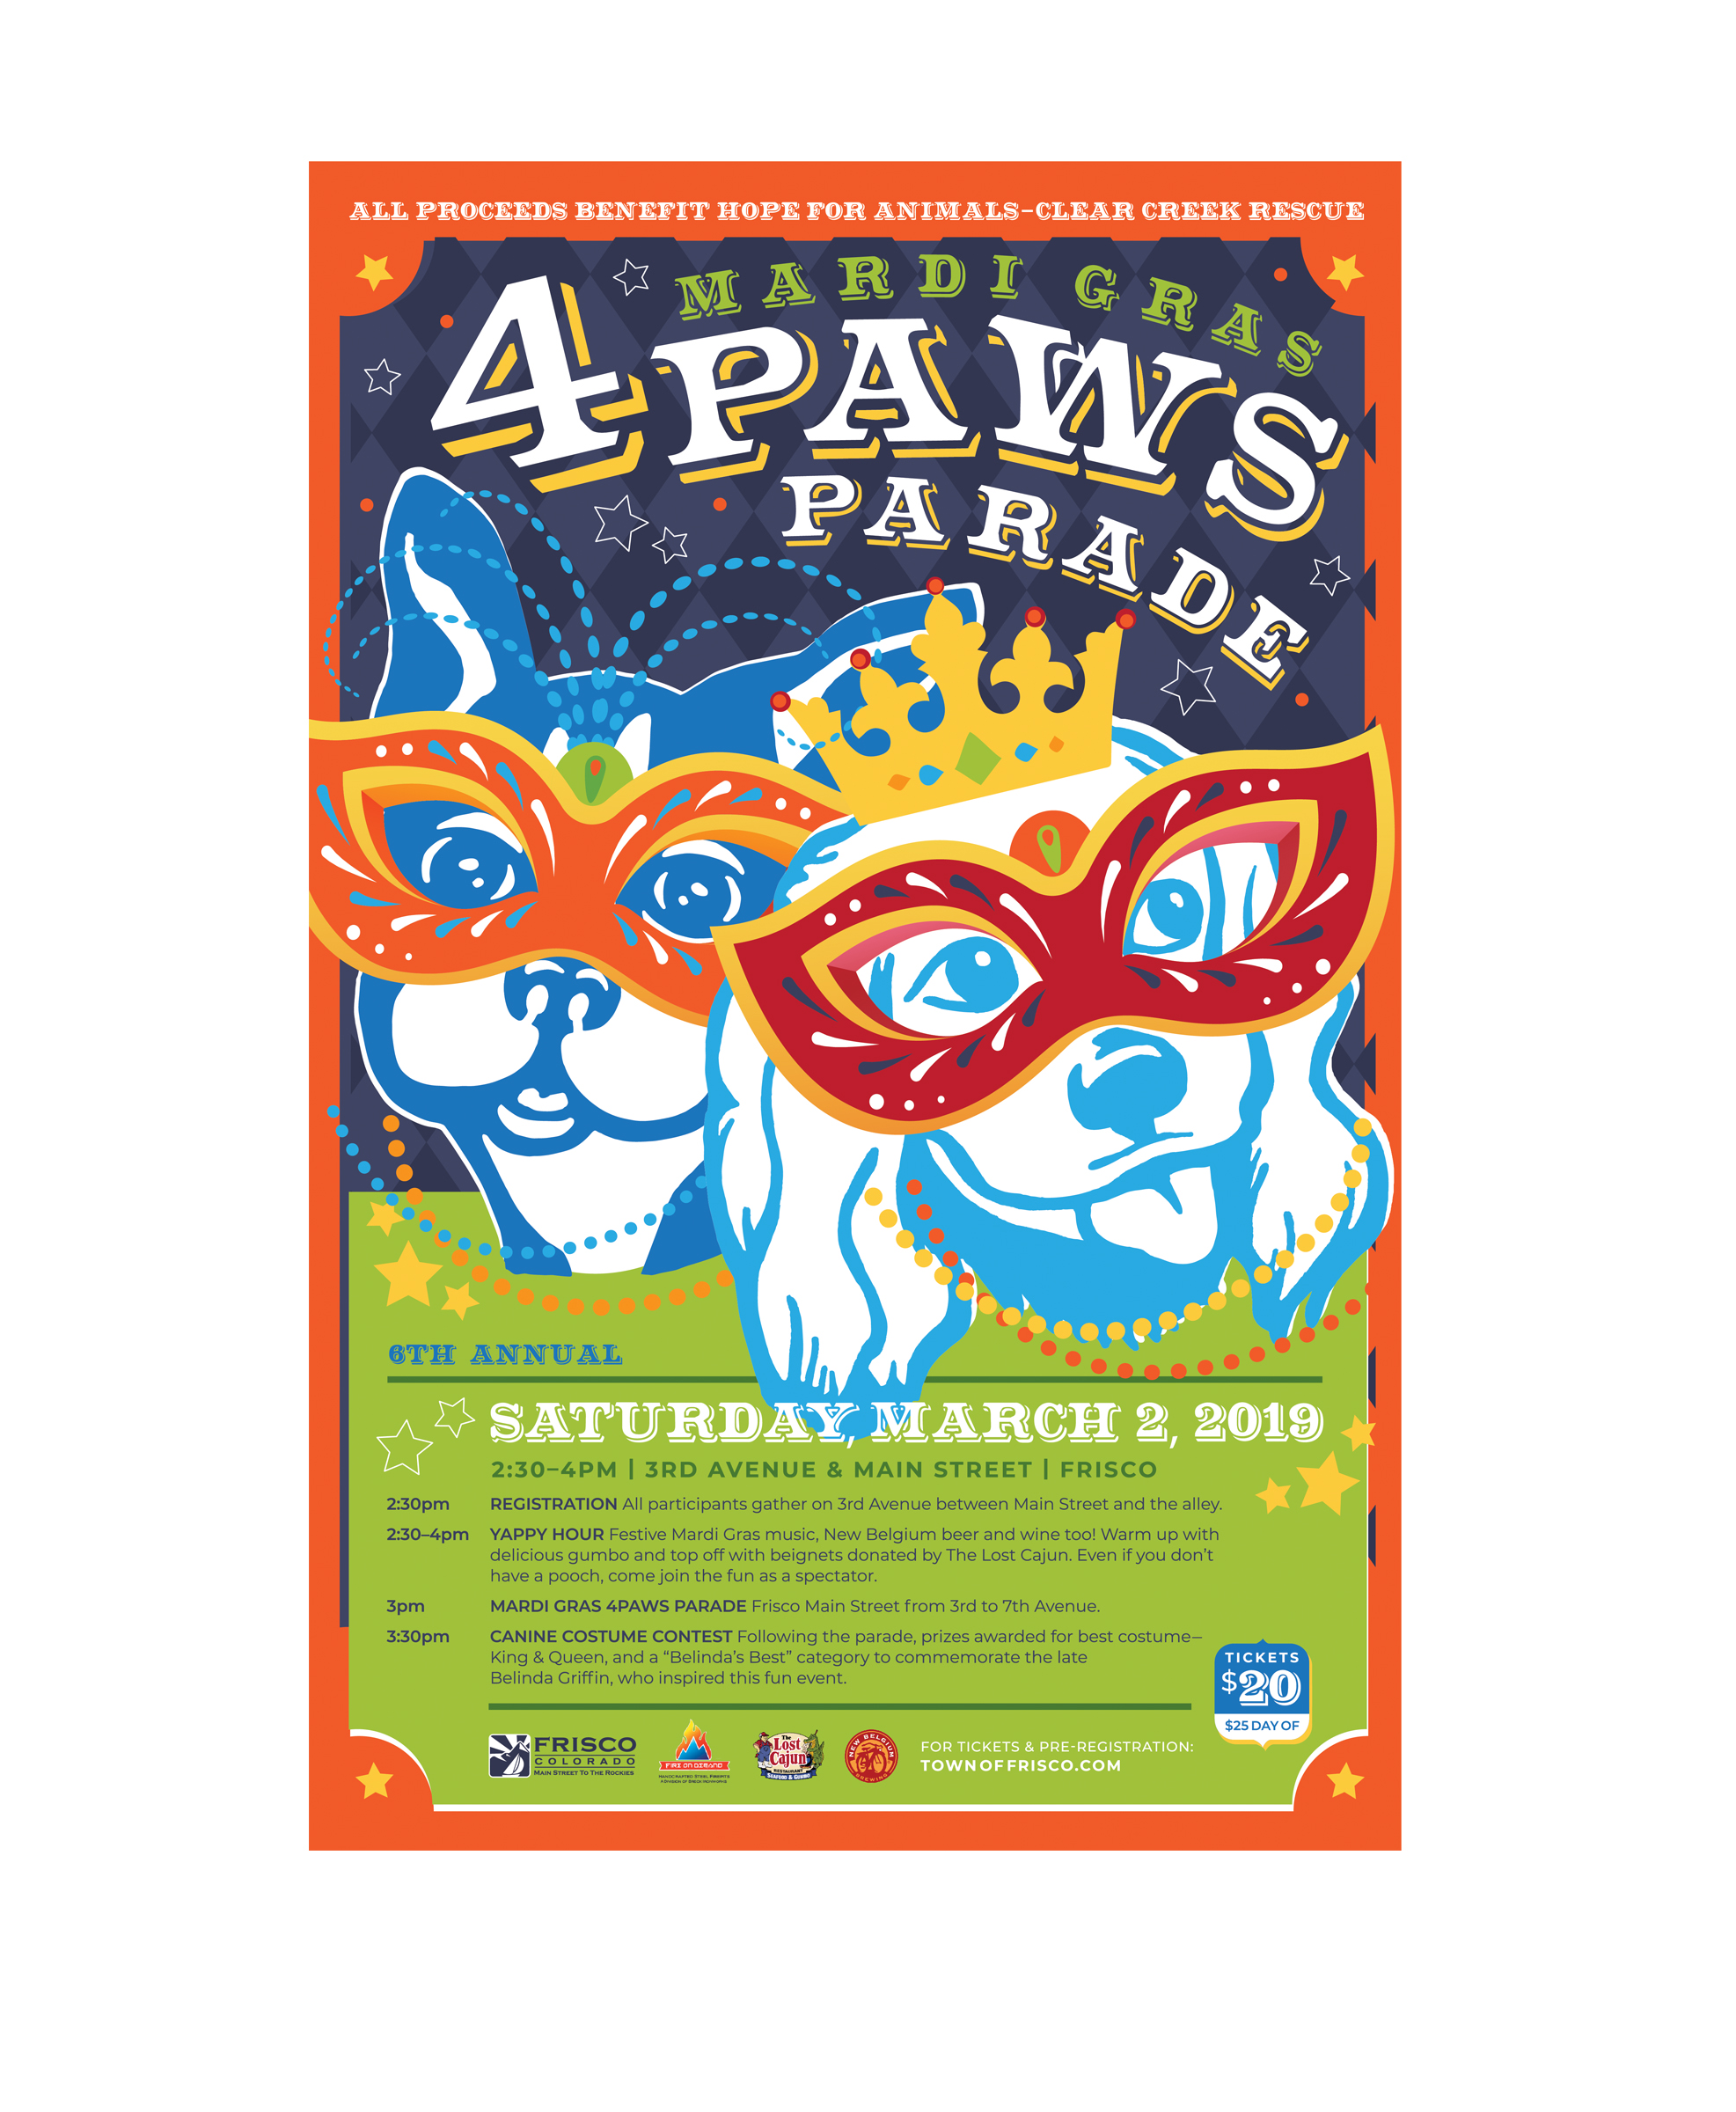 Mardi Gras 4Paws Benefitting Hope for Animals